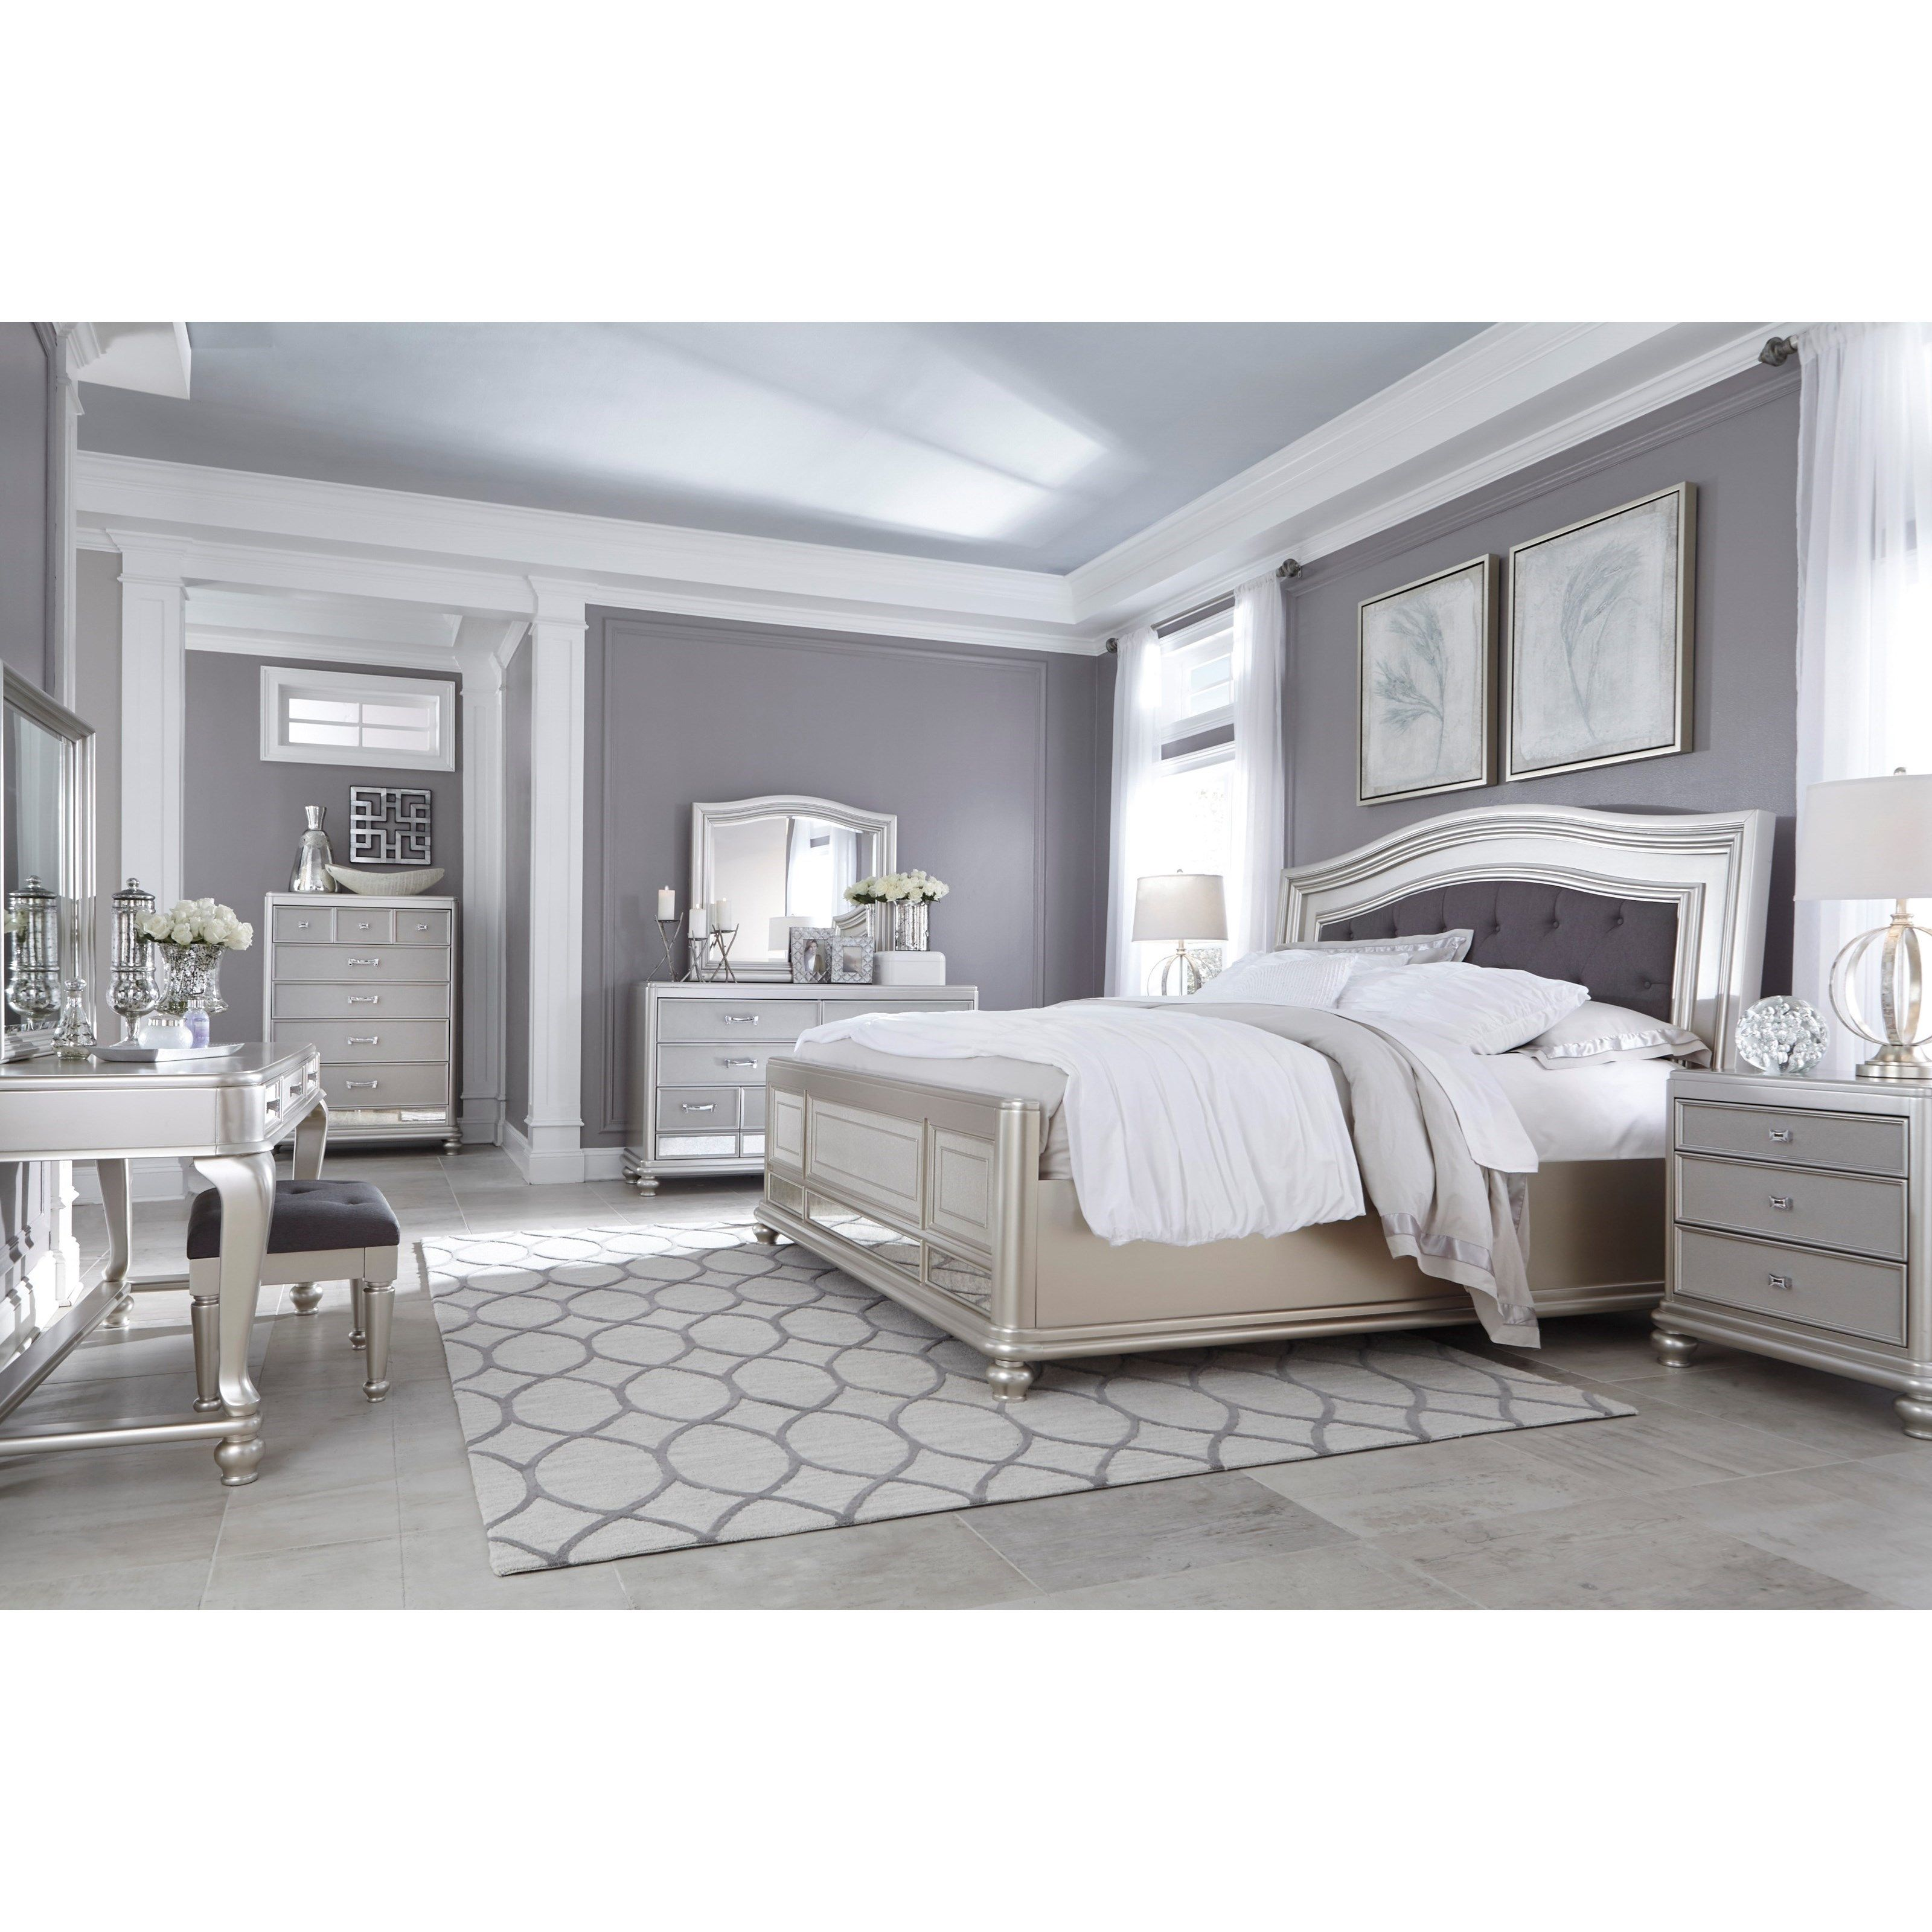 Coralayne king bedroom group by signature design by ashley for Dormitorio king